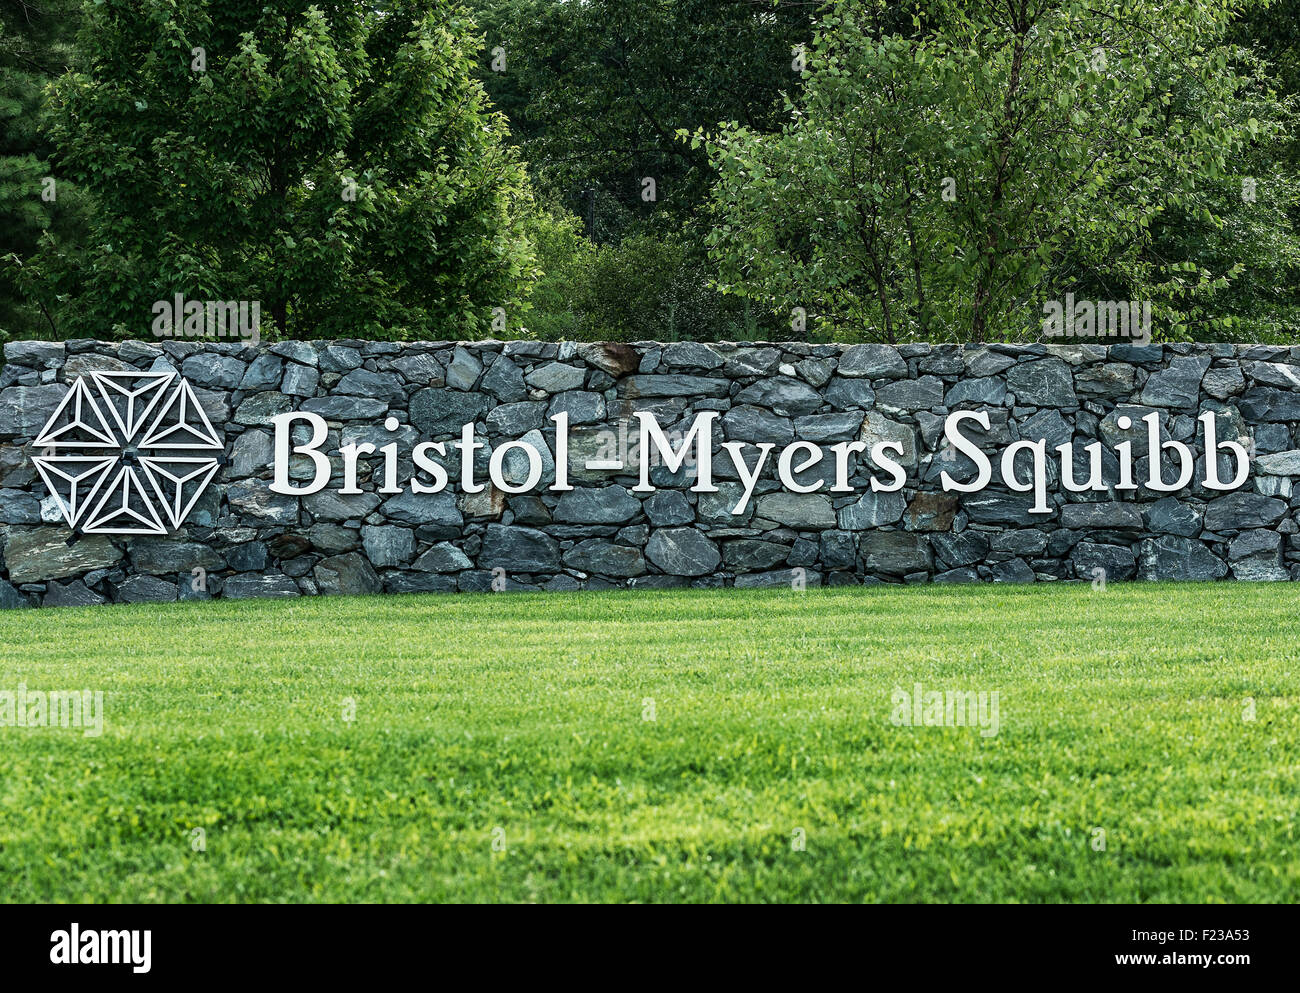 Bristol-Myers Squibb R&D operations site, Devers, Massachusetts, USA - Stock Image